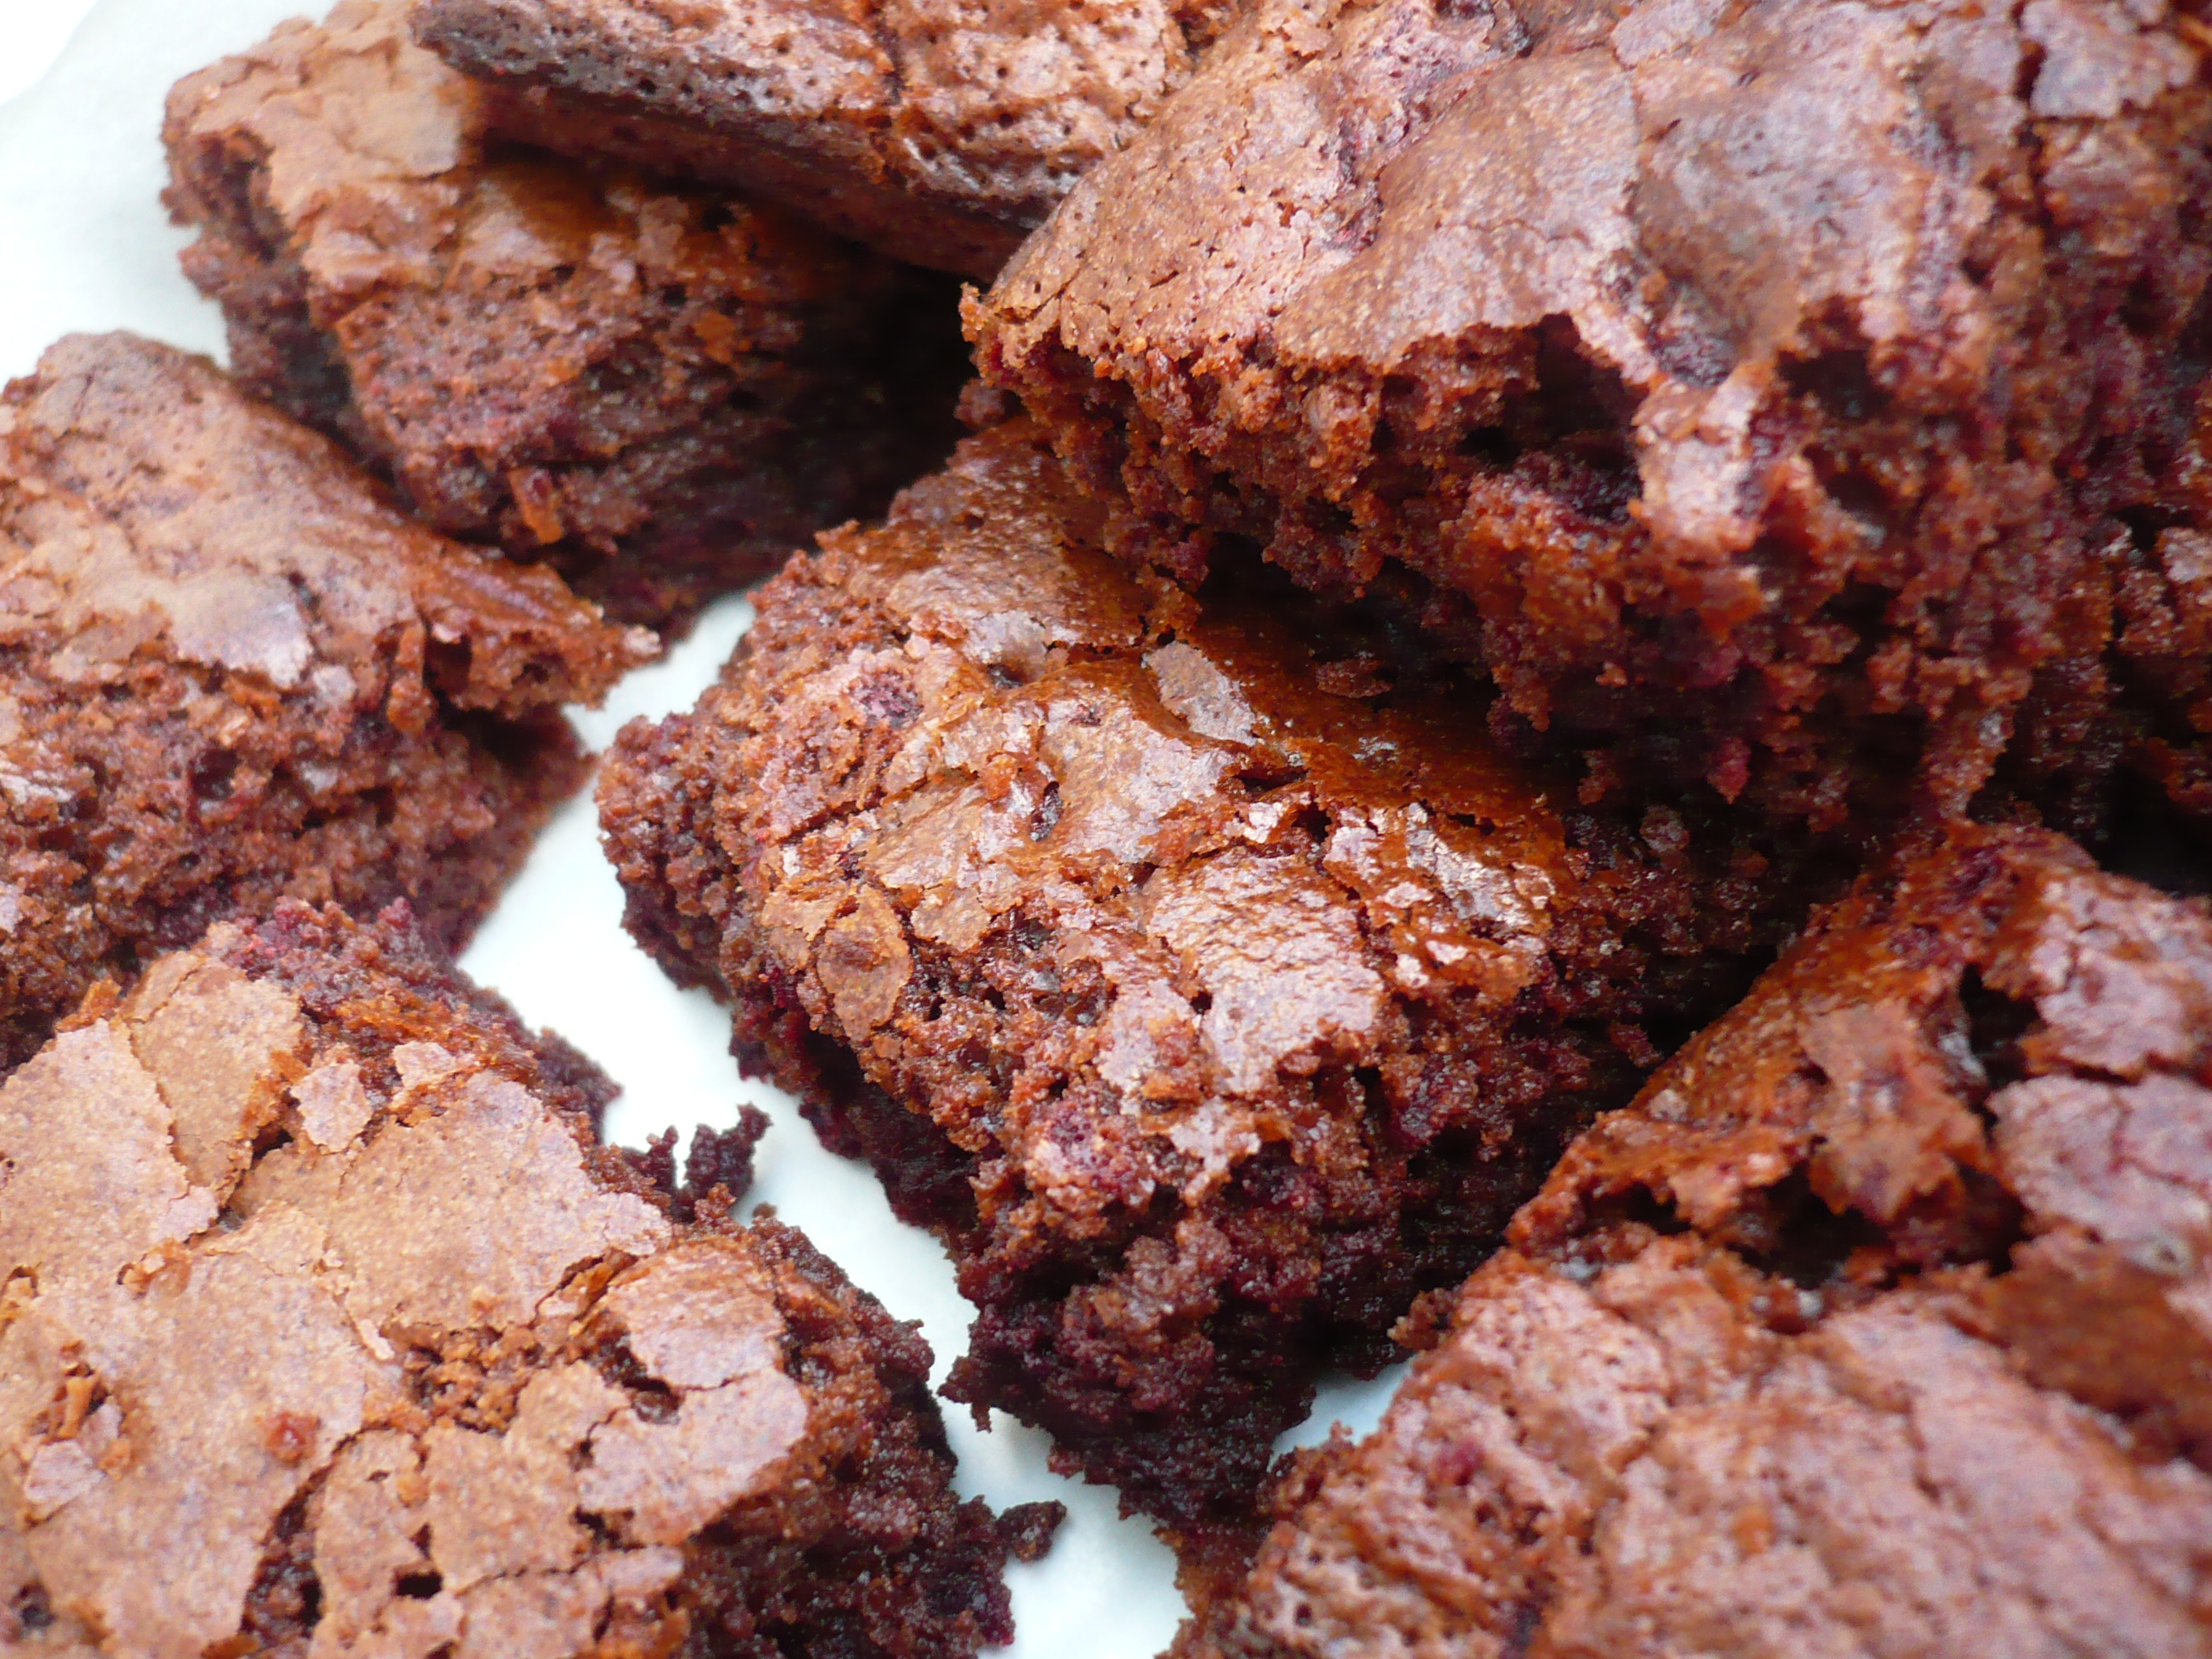 File:Chocolate Beetroot Brownies.jpg - Wikimedia Commons